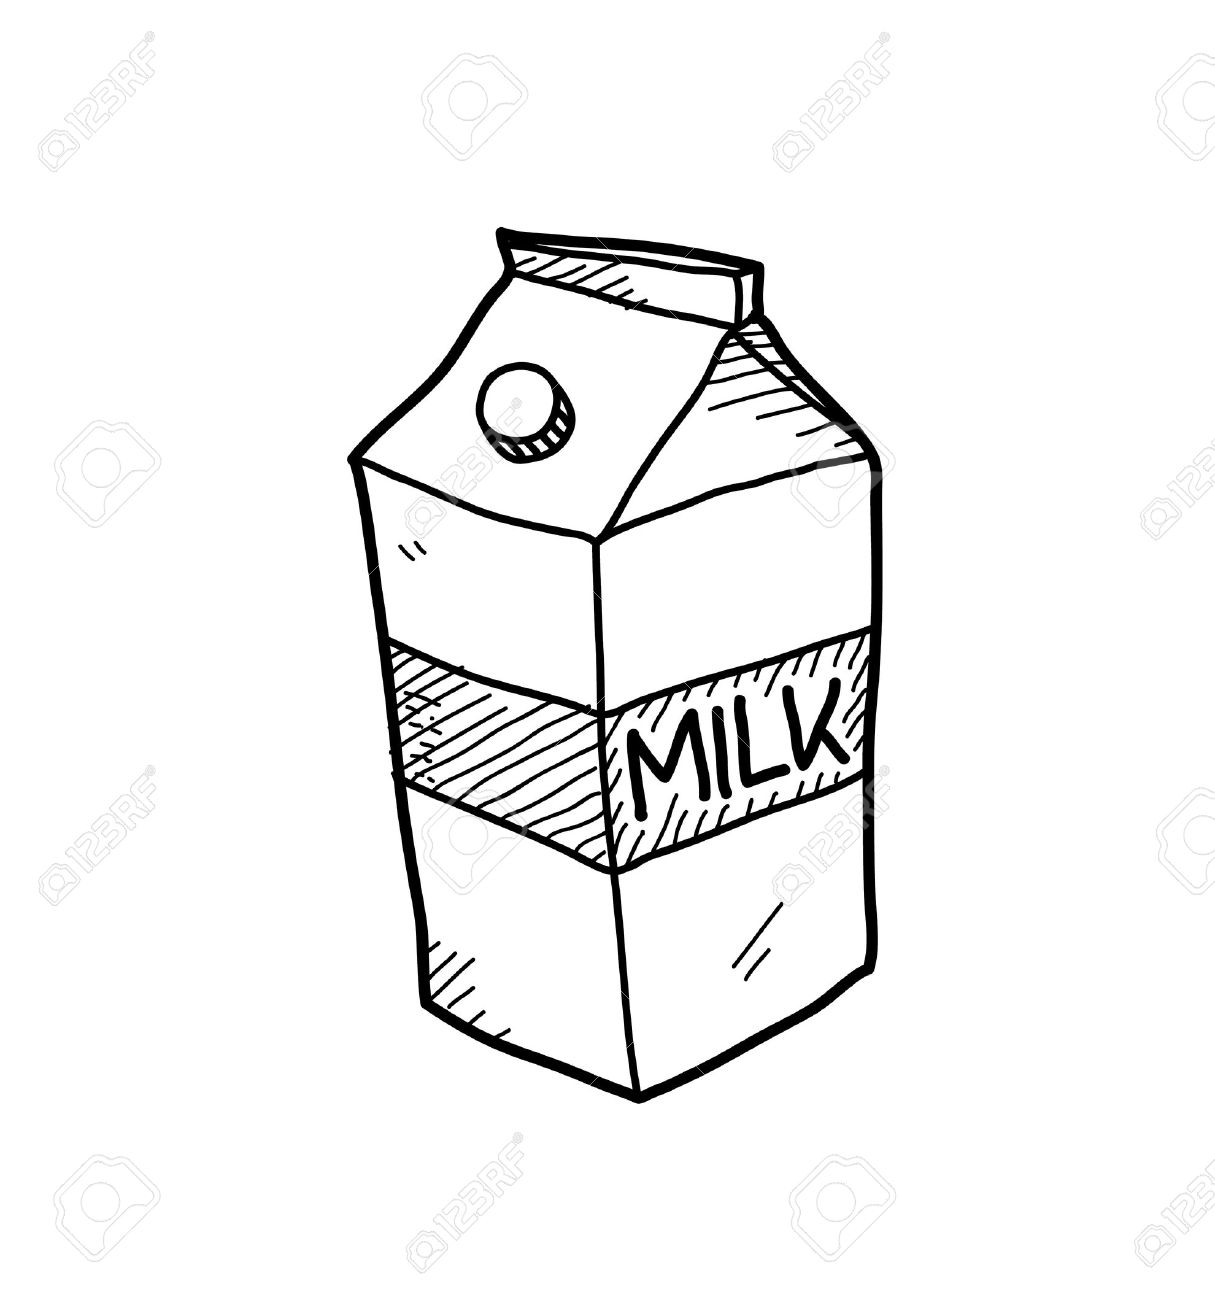 milk carton drawing at getdrawings com free for personal use milk rh getdrawings com milk carton drawing easy milk carton drawing tumblr